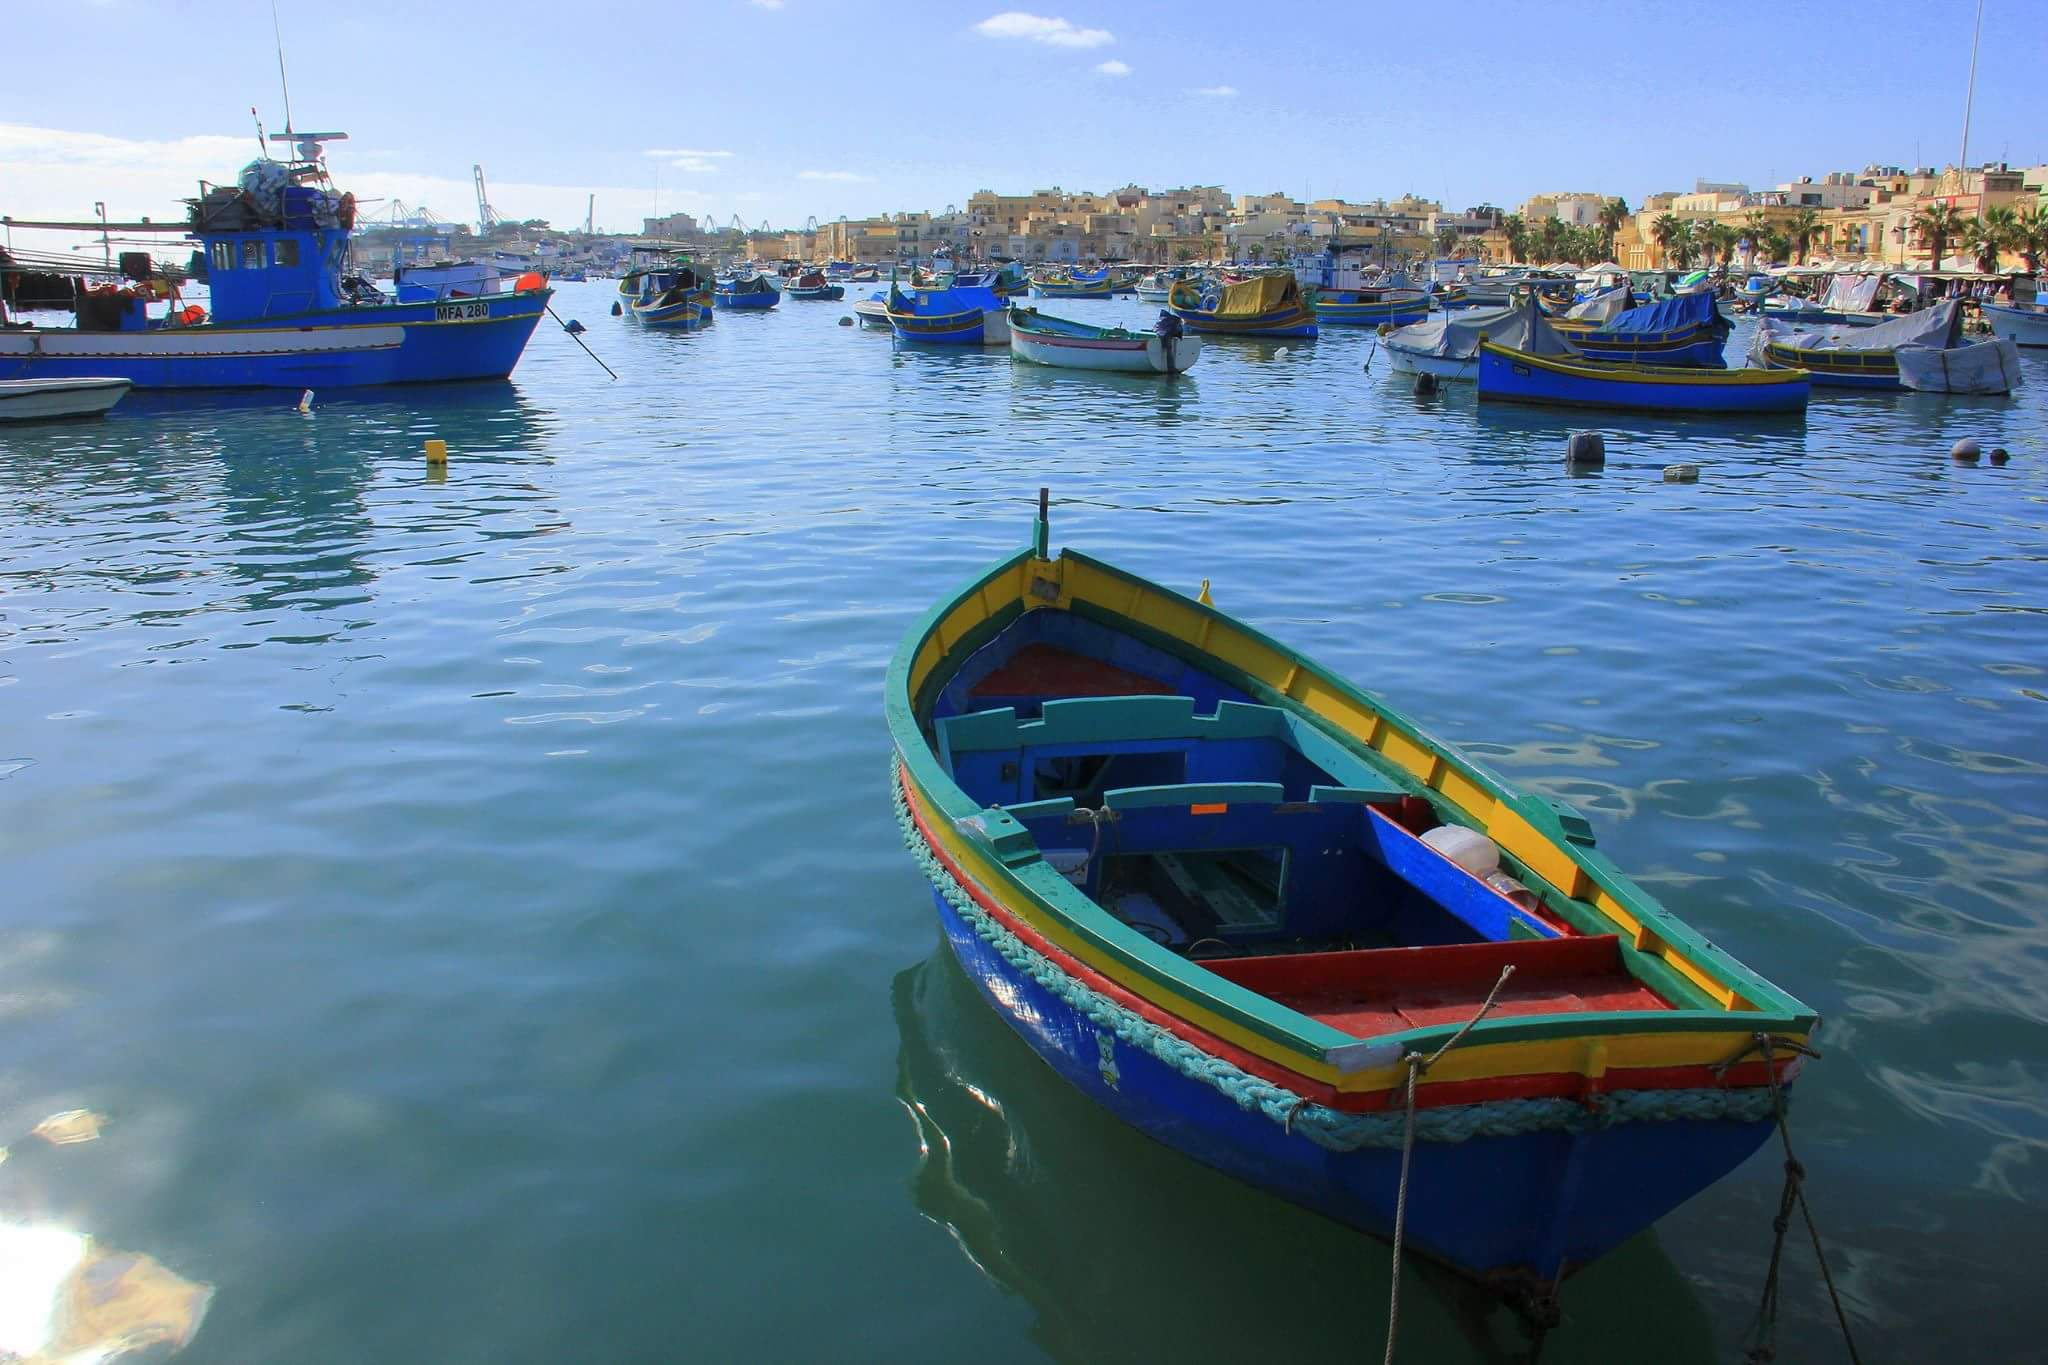 One of the sights that greet you when you visit Marsaxlokk